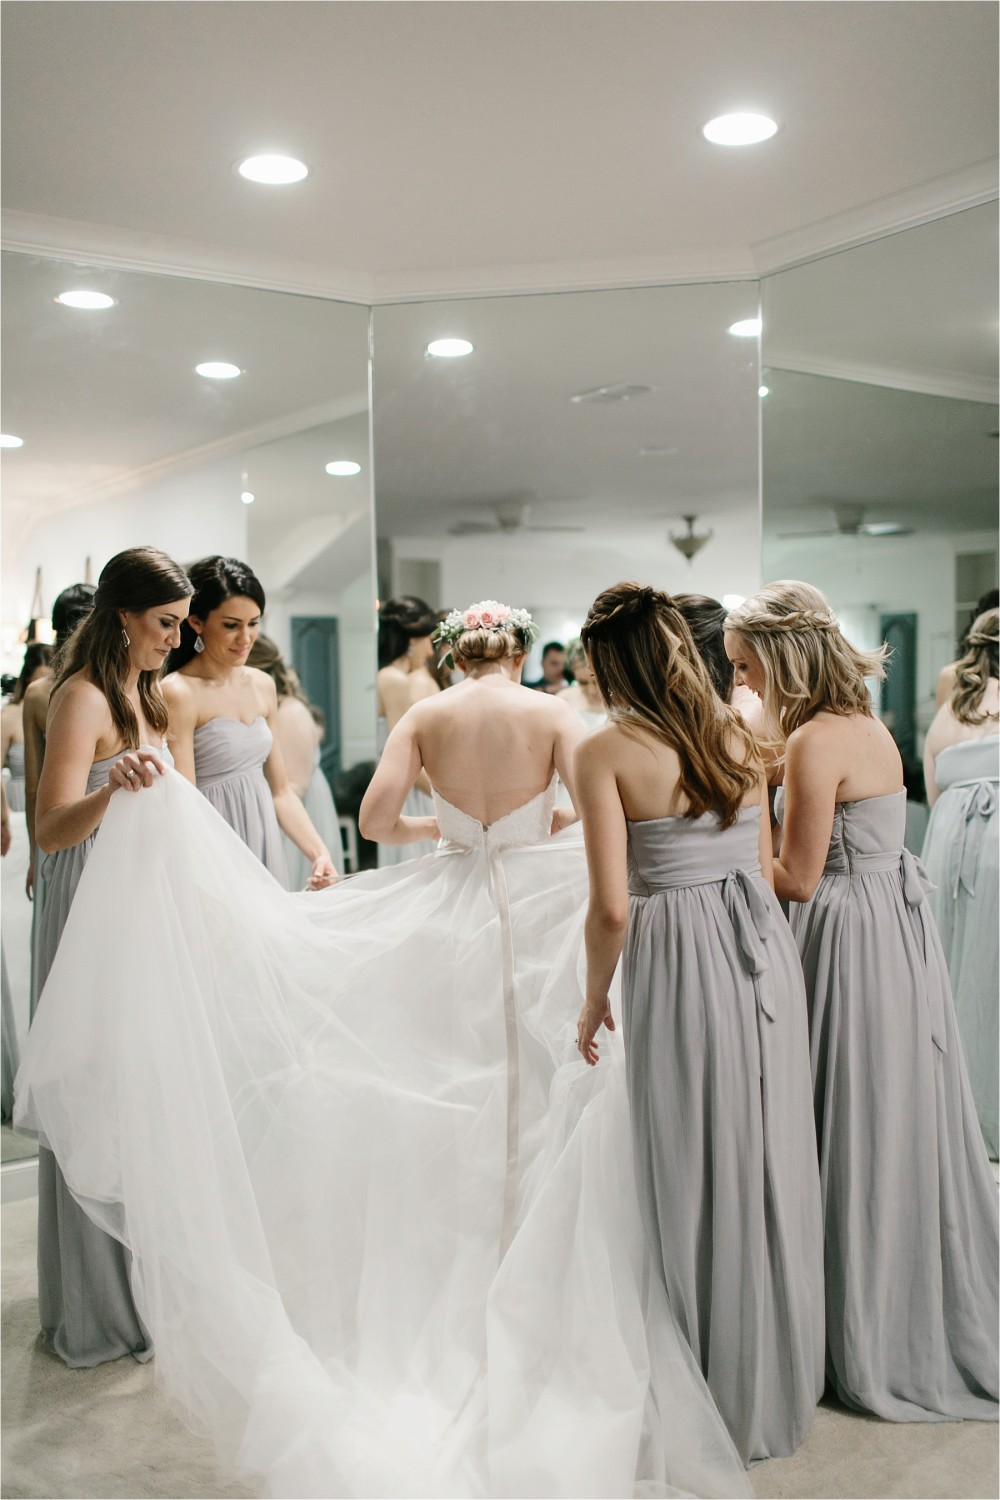 brad-lara-__-a-grey-and-blush-pink-intimate-wedding-at-hidden-waters-event-center-in-waxahachie-tx-by-north-texas-wedding-photographer-rachel-meagan-photography-_-009